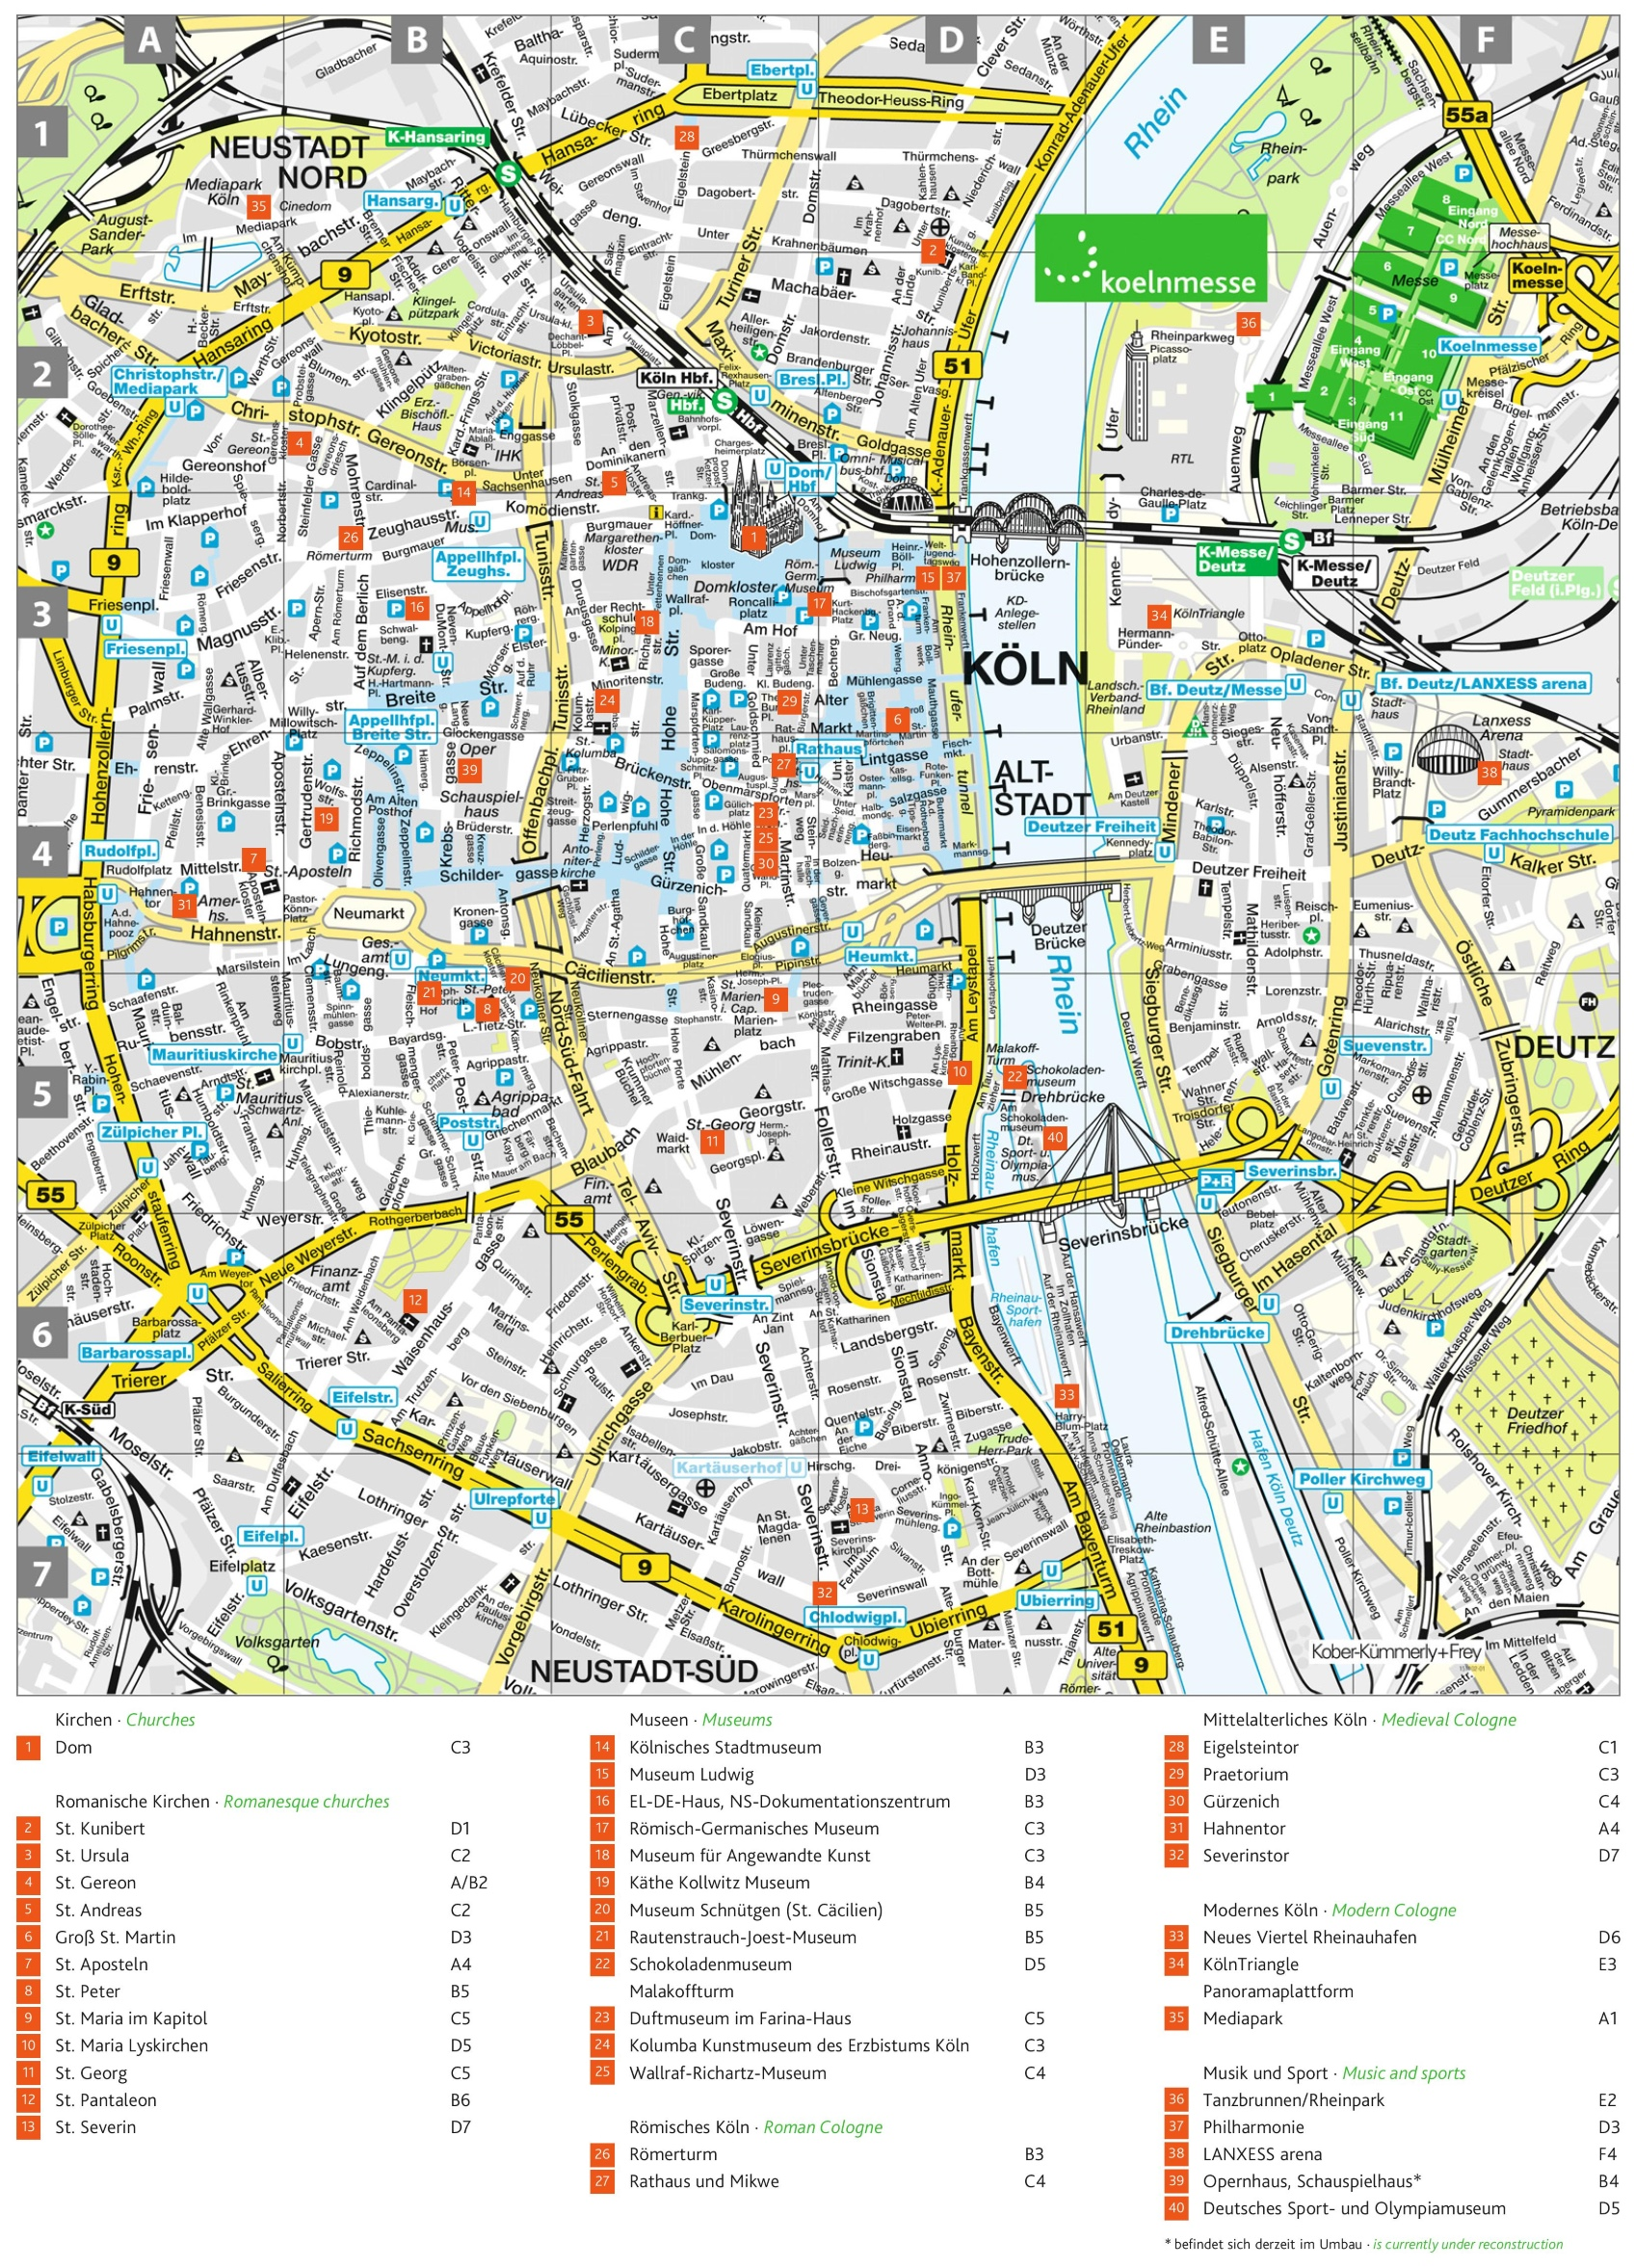 Map Of Germany Showing Cologne.Koln Maps Germany Maps Of Cologne Koln